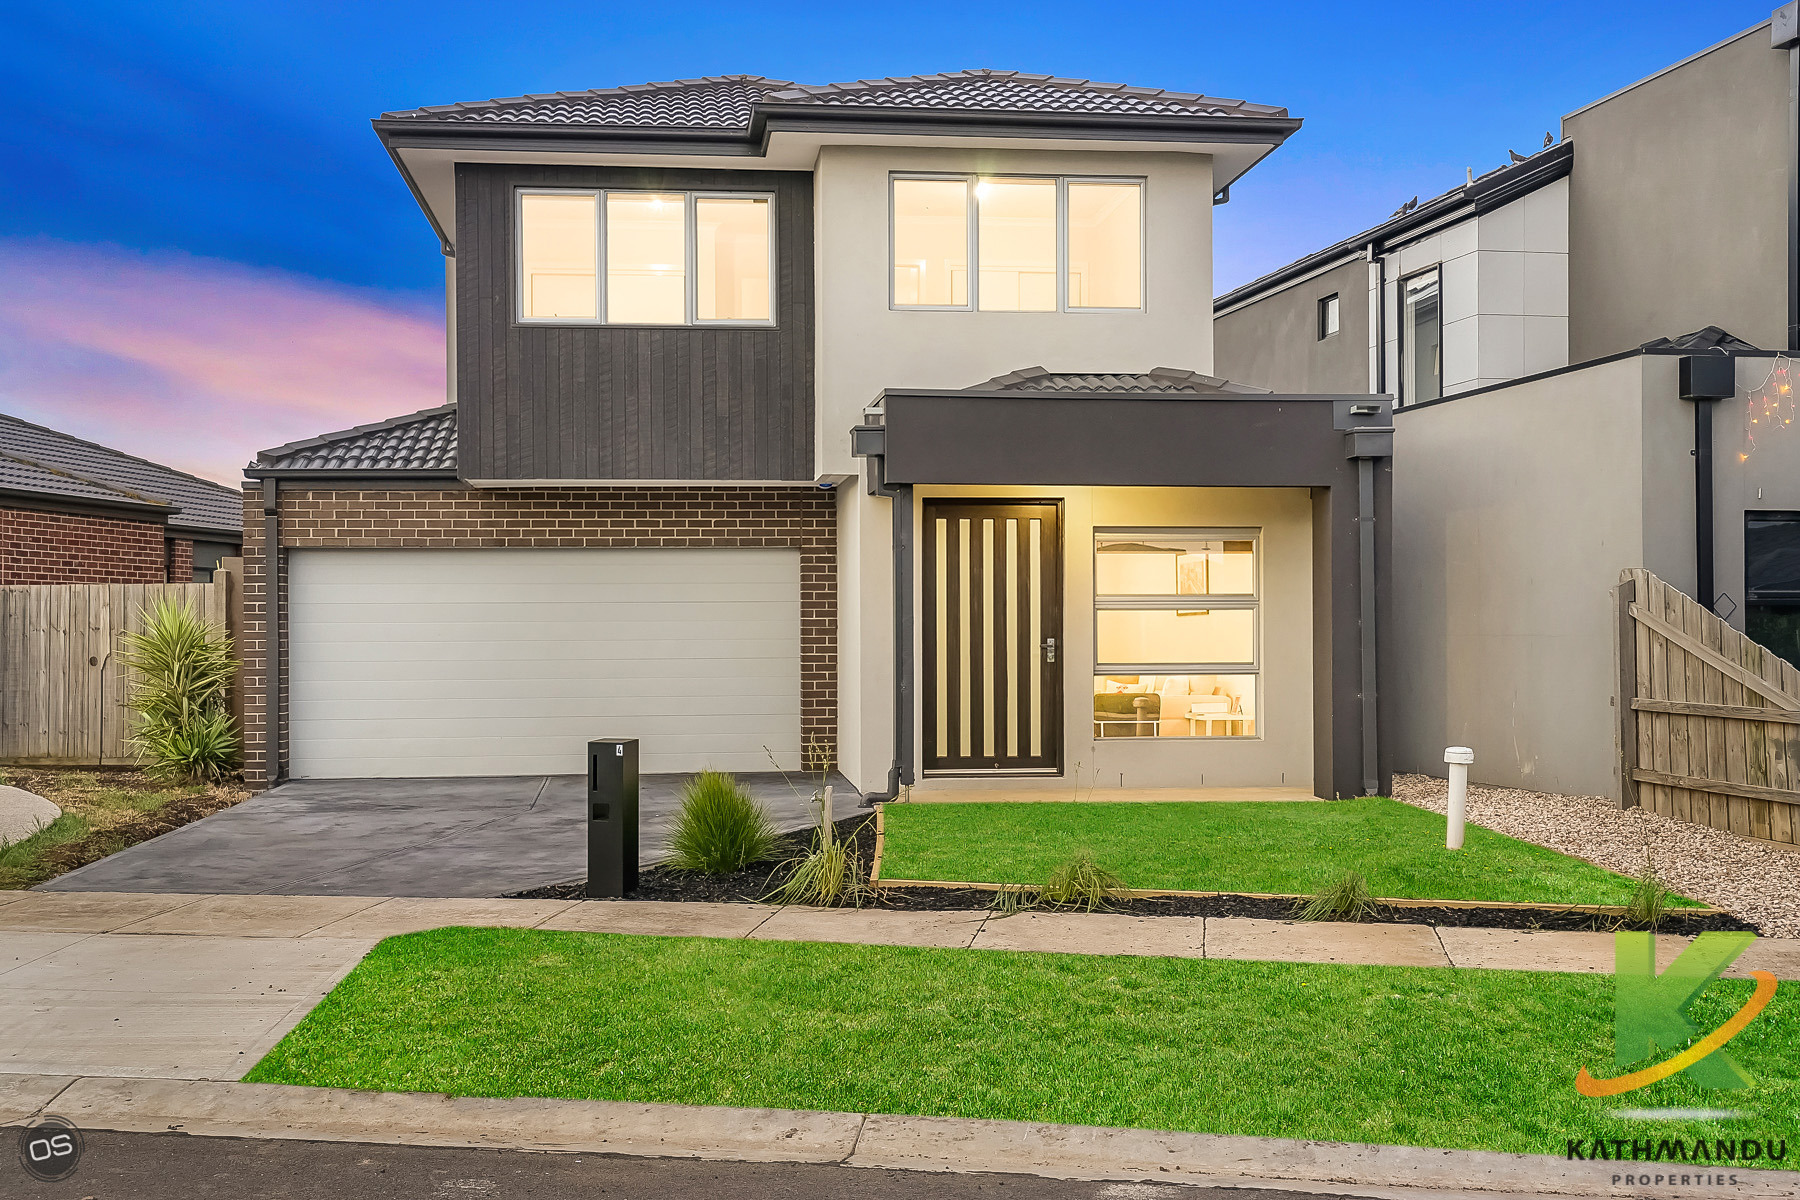 Properties for Sale Adelaide